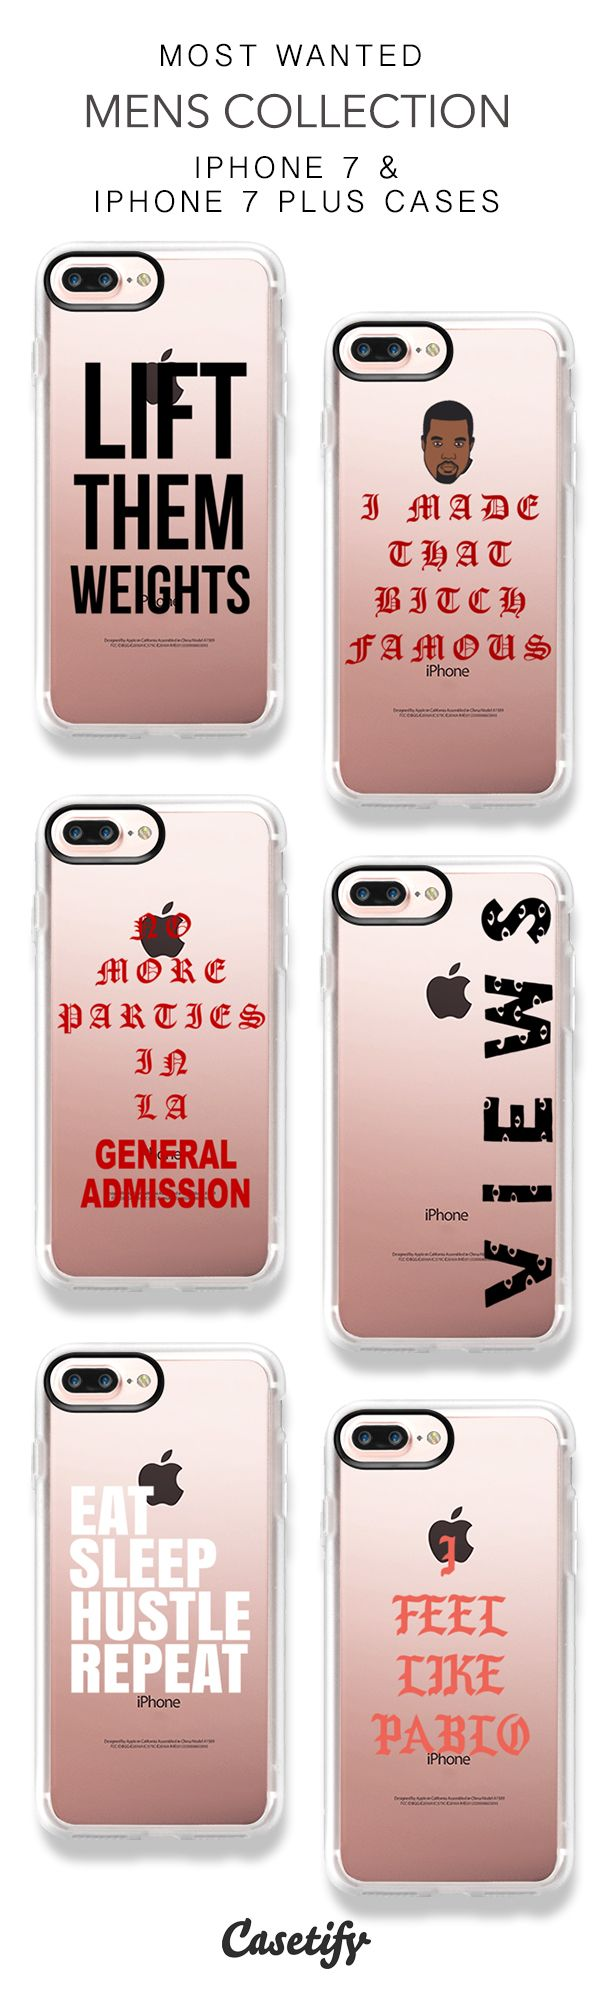 Most Wanted Mens Collection iPhone 7 Cases and iPhone 7 Plus Cases. More Guys iPhone case here > https://www.casetify.com/collections/men/iphone-7-cases#/?hideCategory=Y